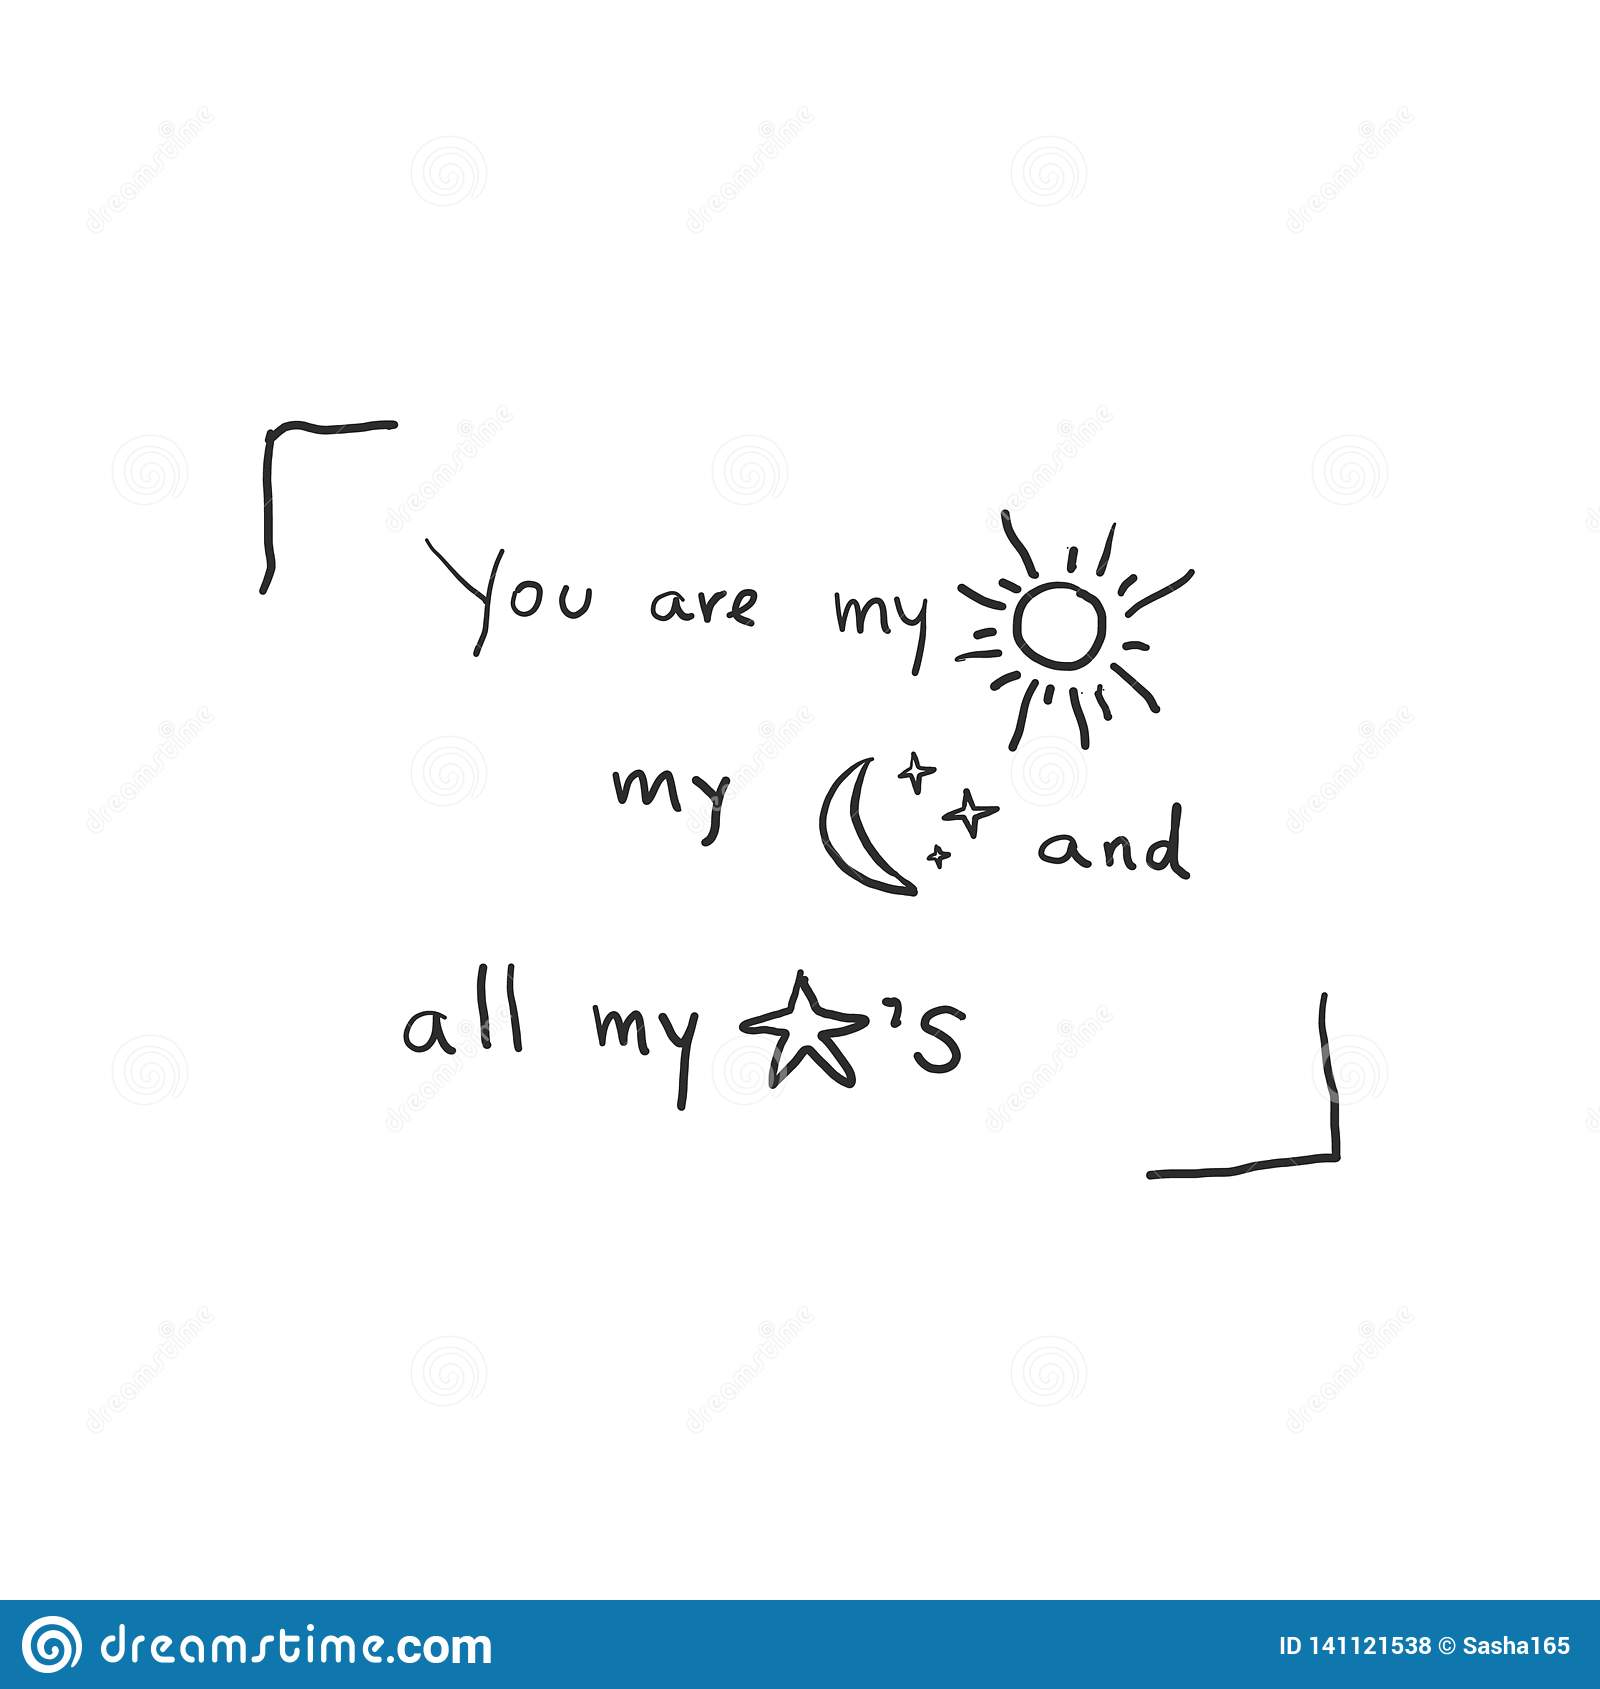 Valentines love doodle hand drawn design, you are my sun my moon and all my stars. vector illustration